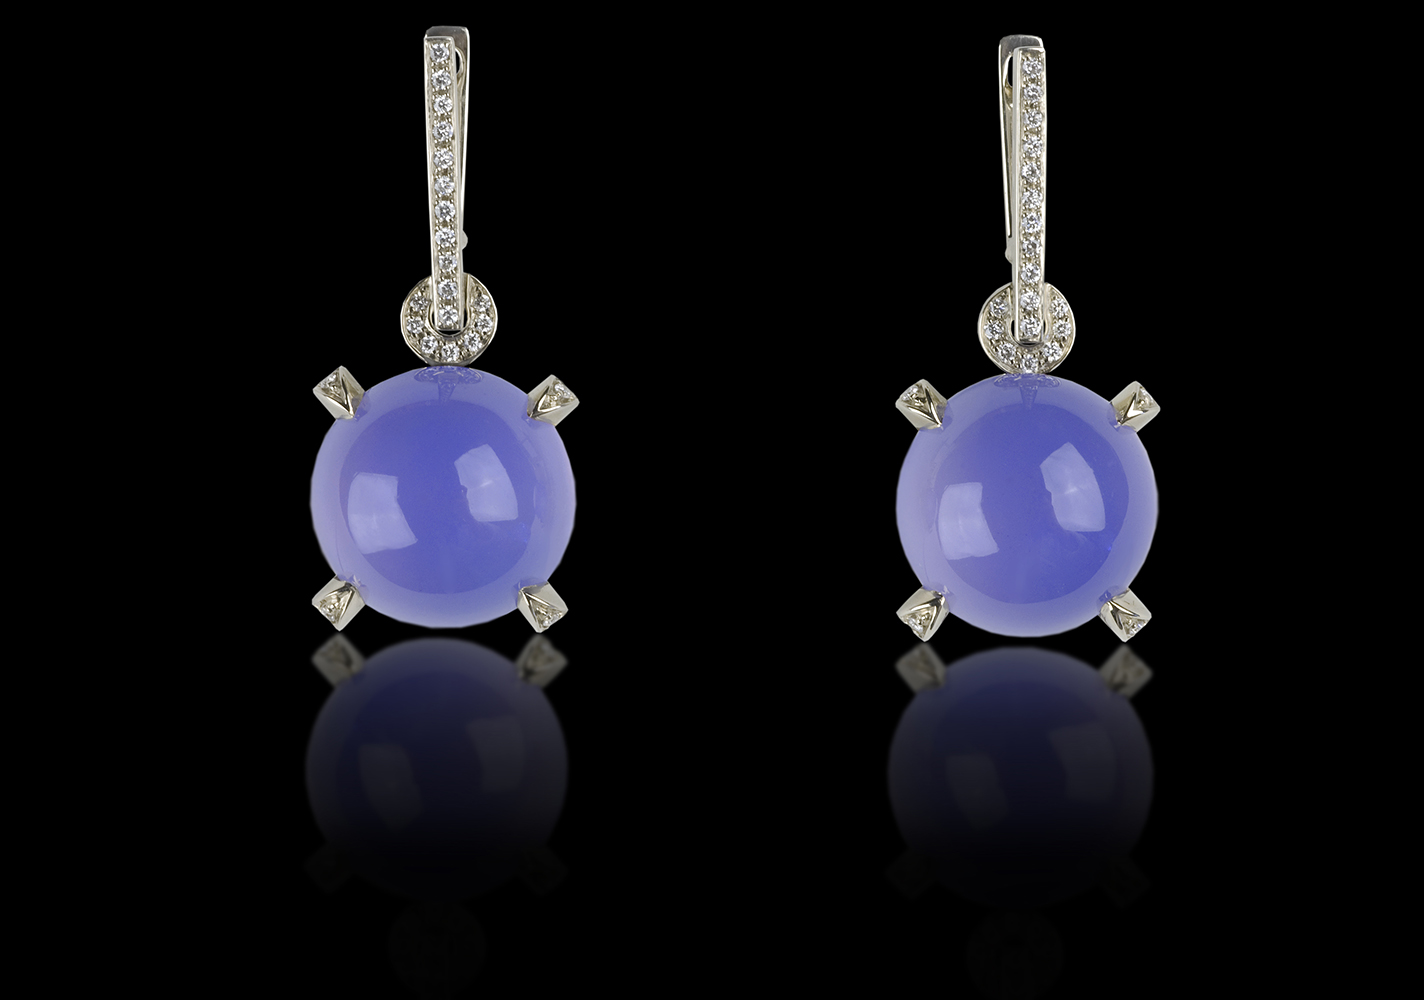 Blue Orbs   Dreams come true under tropical seas.    Earrings in 18 karat white gold, white Diamonds and Rare Chrysophrase     $4,700